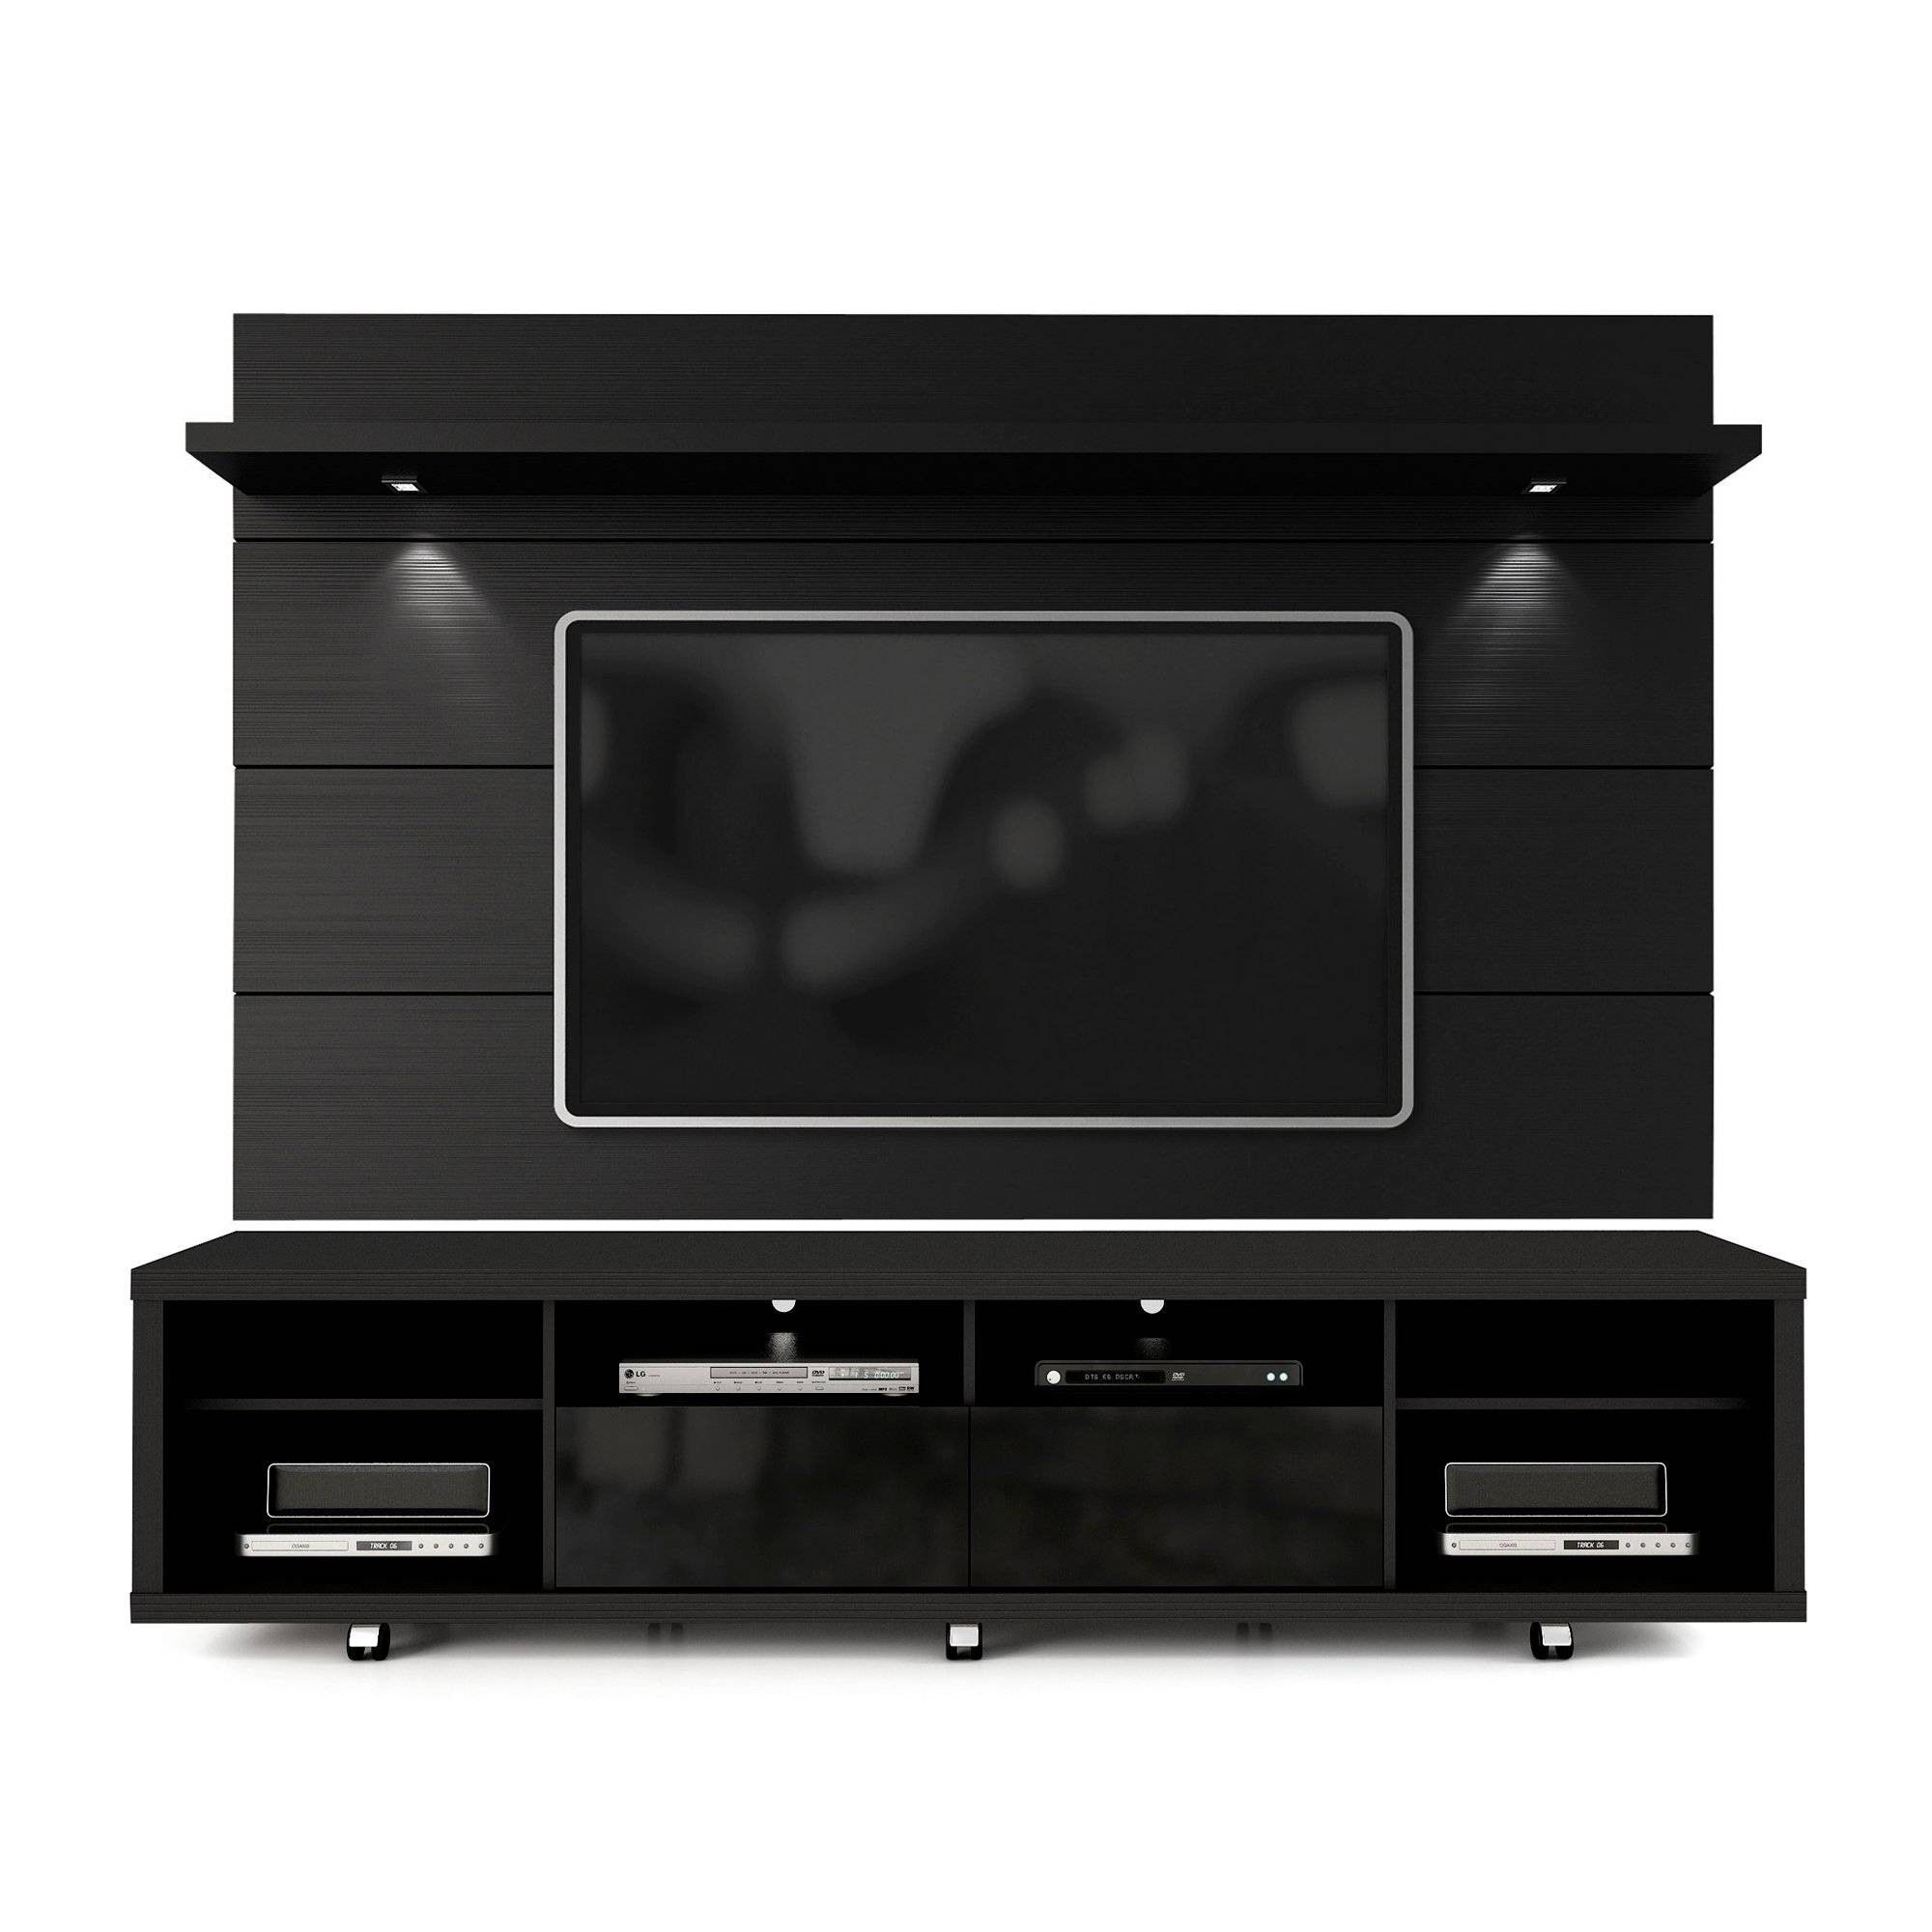 Cabrini Floating Wall Mount With Led Lights Tv Stand For Tvs Up To 70 Black Manhattan Comfort Tv Panel Tv Wall Design Tv Wall Manhattan comfort tv stand